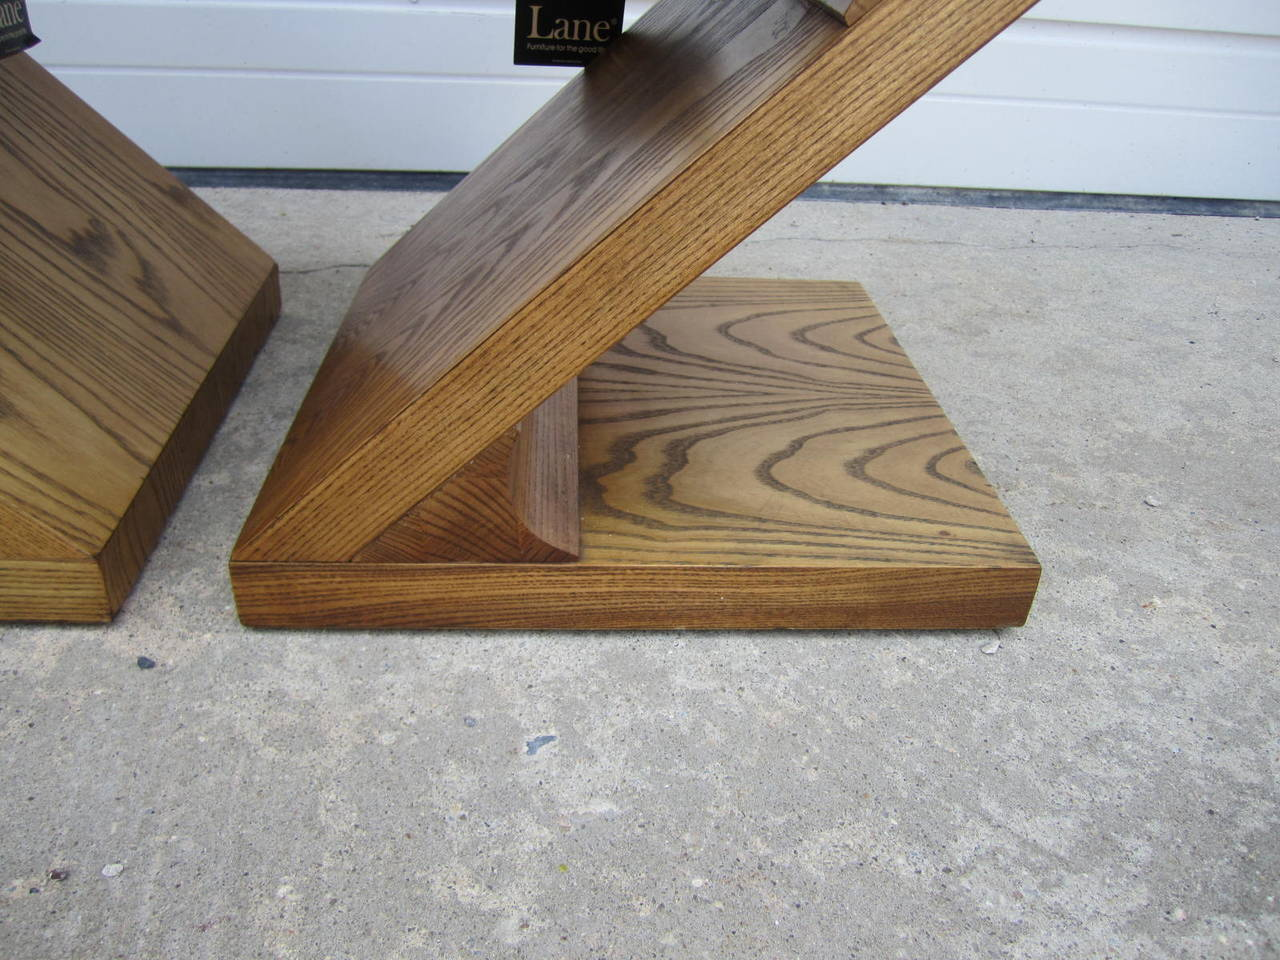 Excellent Pair of Lane Z End Side Tables Mid-Century Modern In Excellent Condition For Sale In Pemberton, NJ